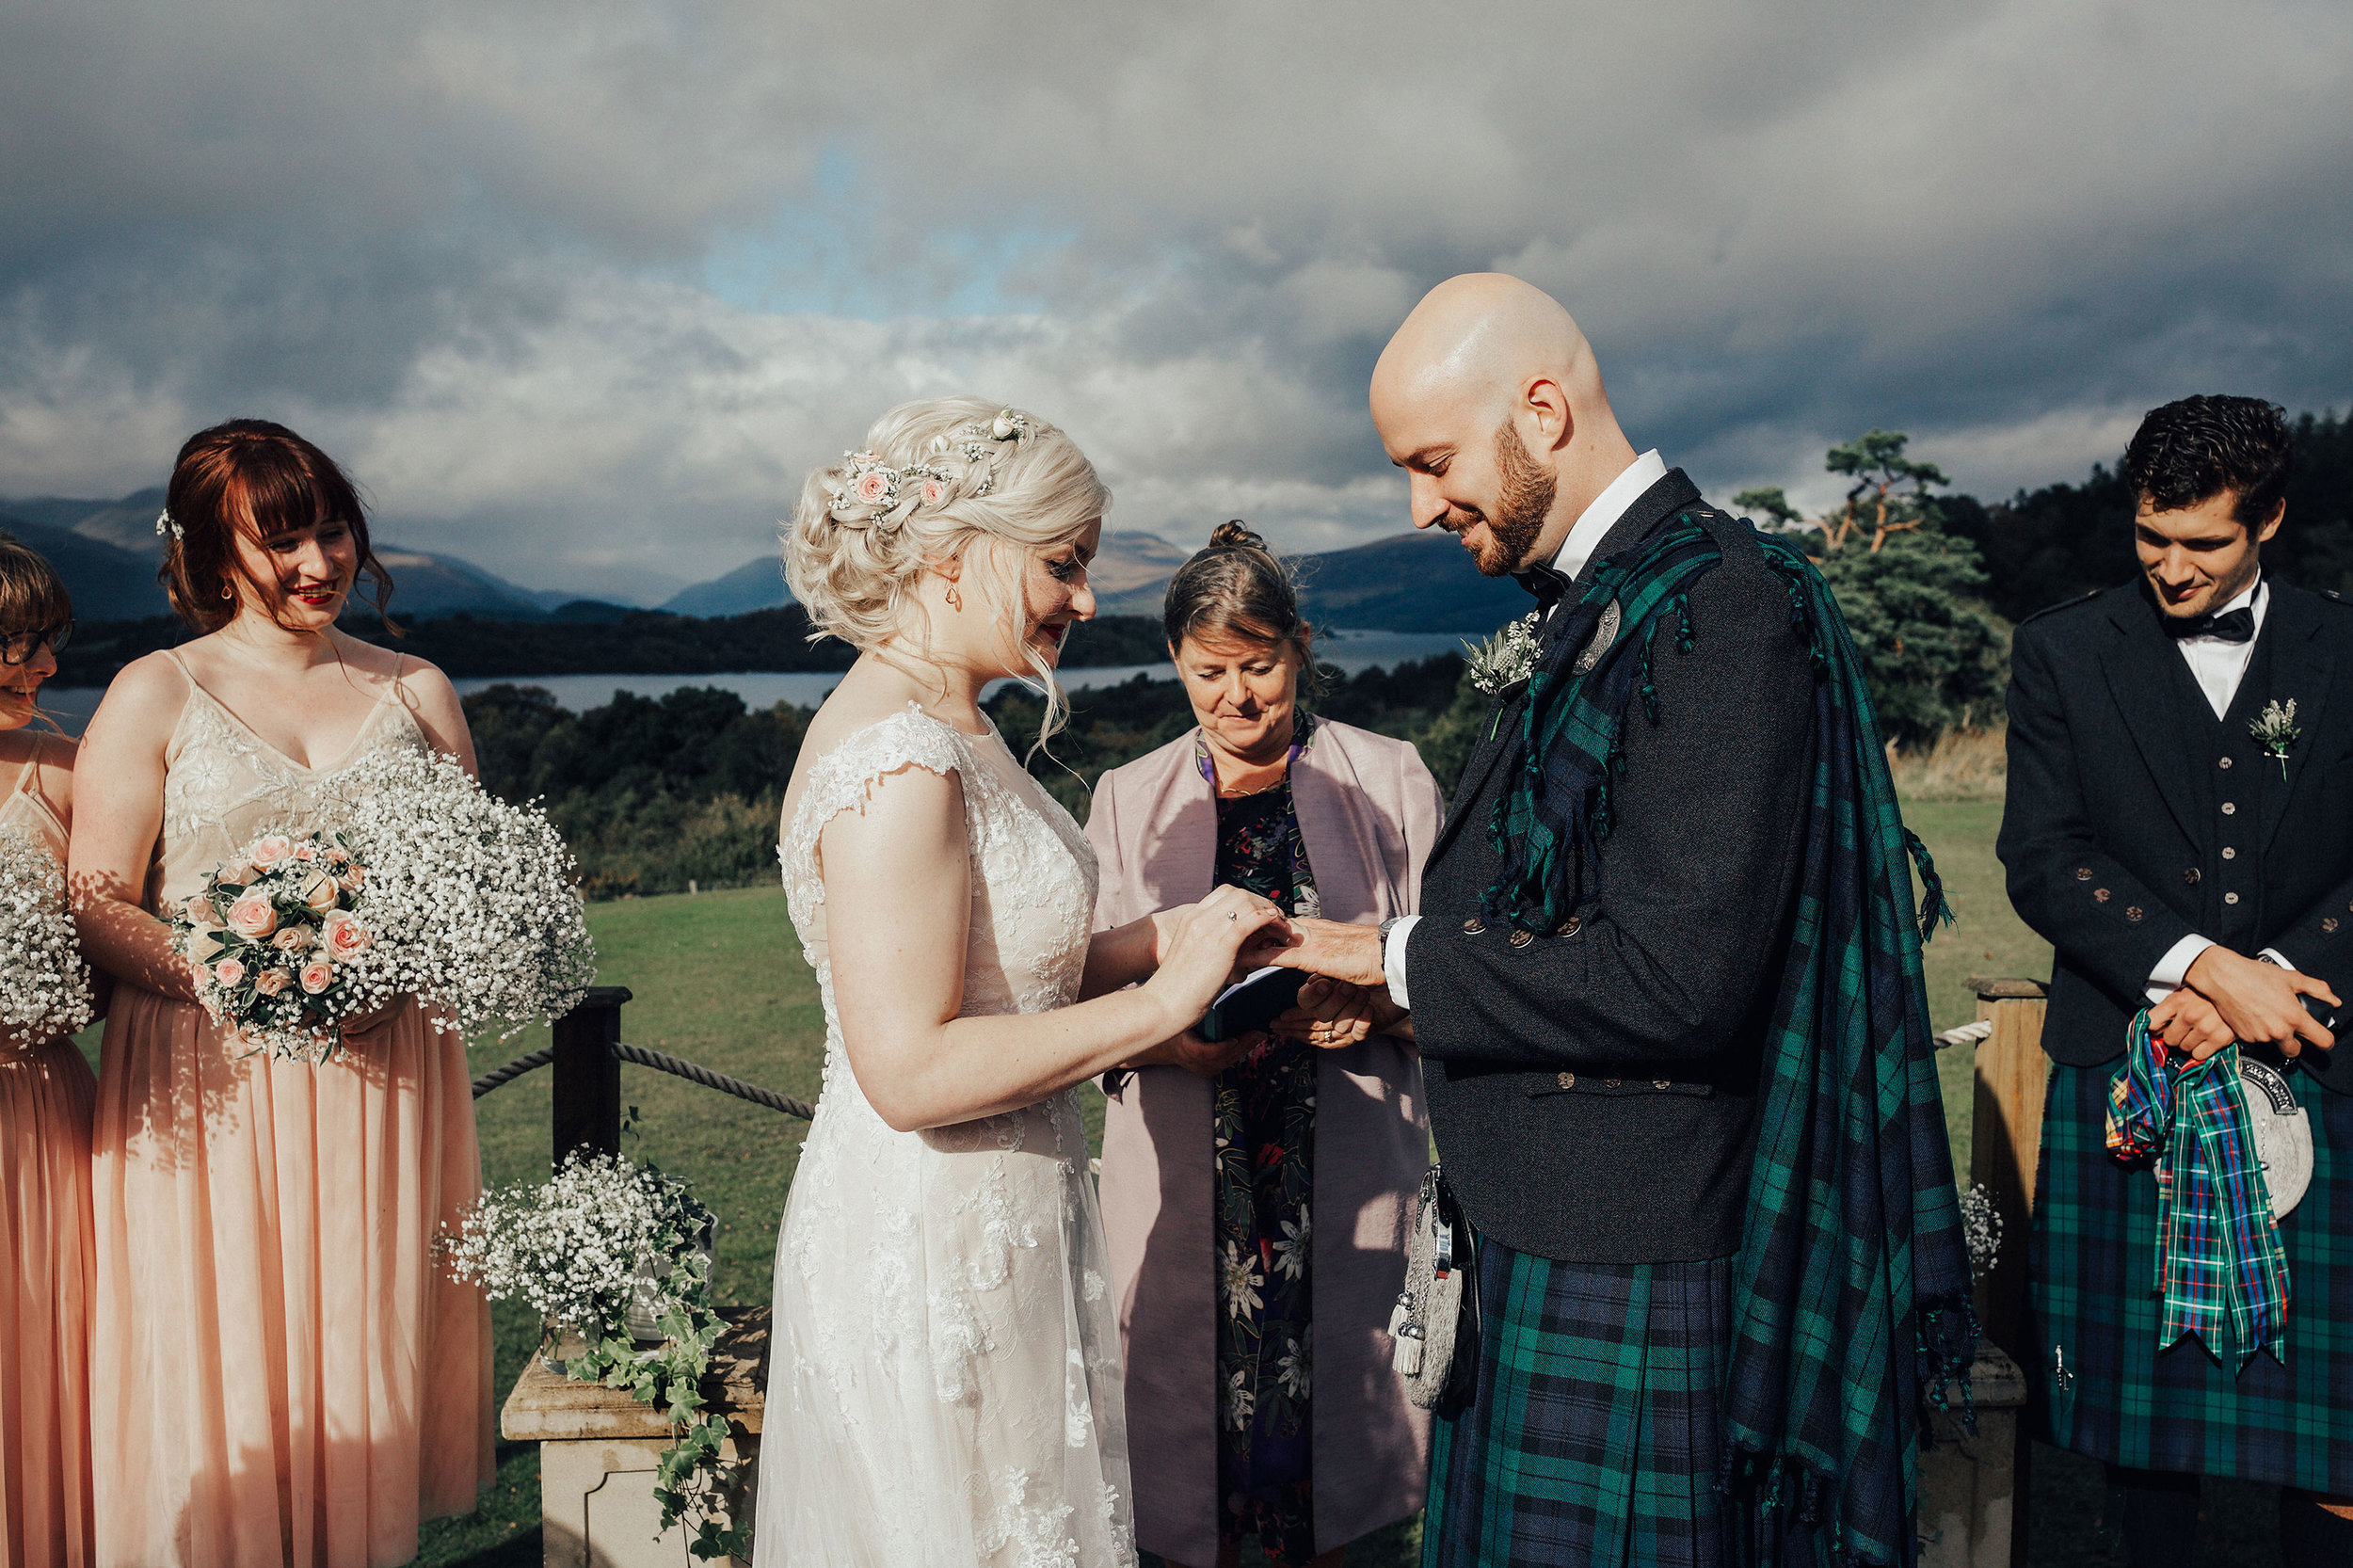 BOTURICH_CASTLE_WEDDING_PHOTOGRAPHER_PJ_PHILLIPS_PHOTOGRAPHY_79.jpg